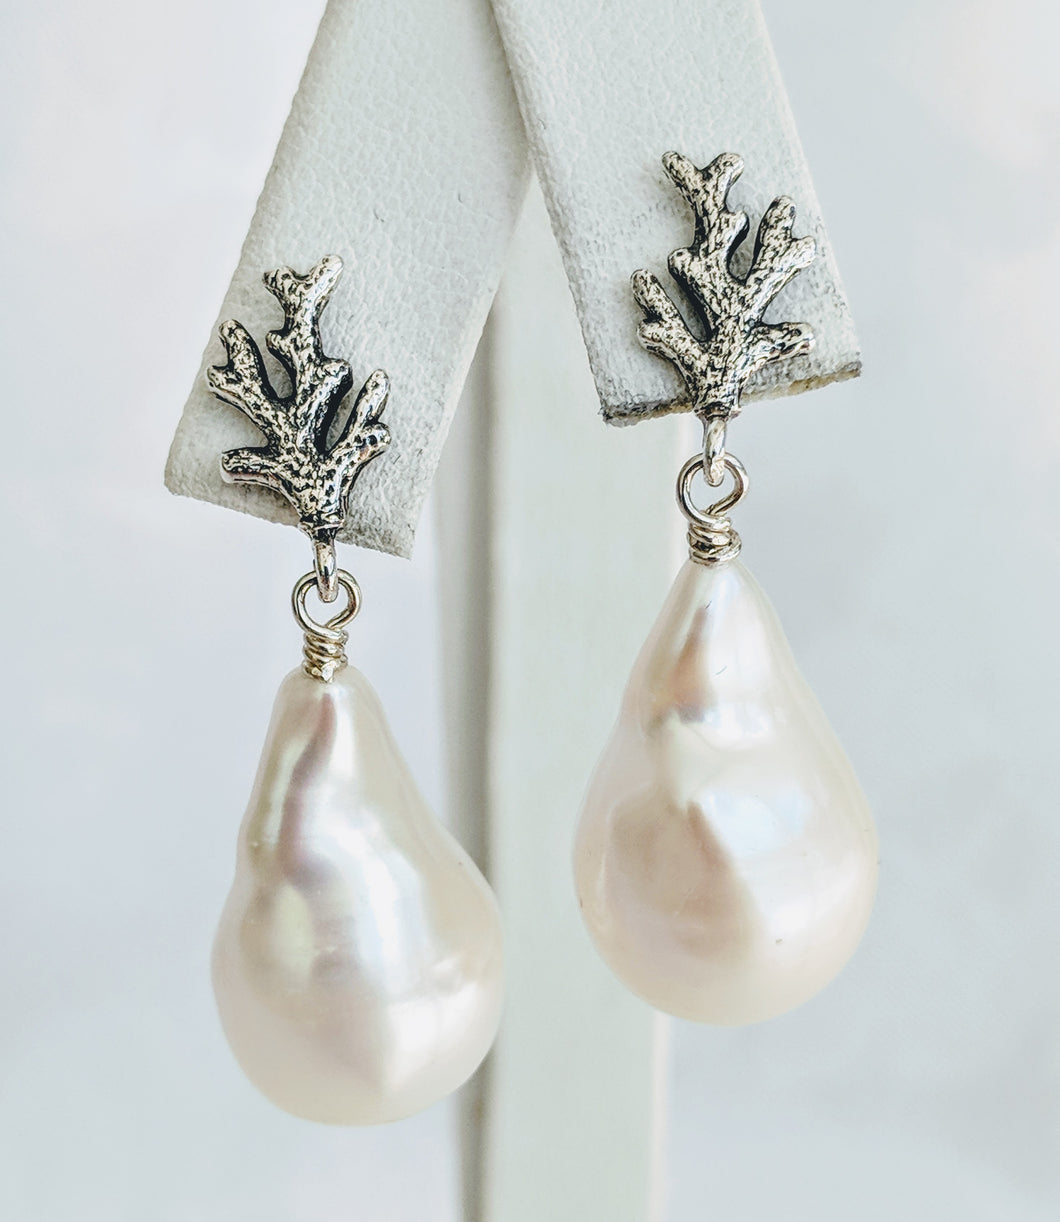 Baroque freshwater pearl earrings with Sterling silver coral branch detail